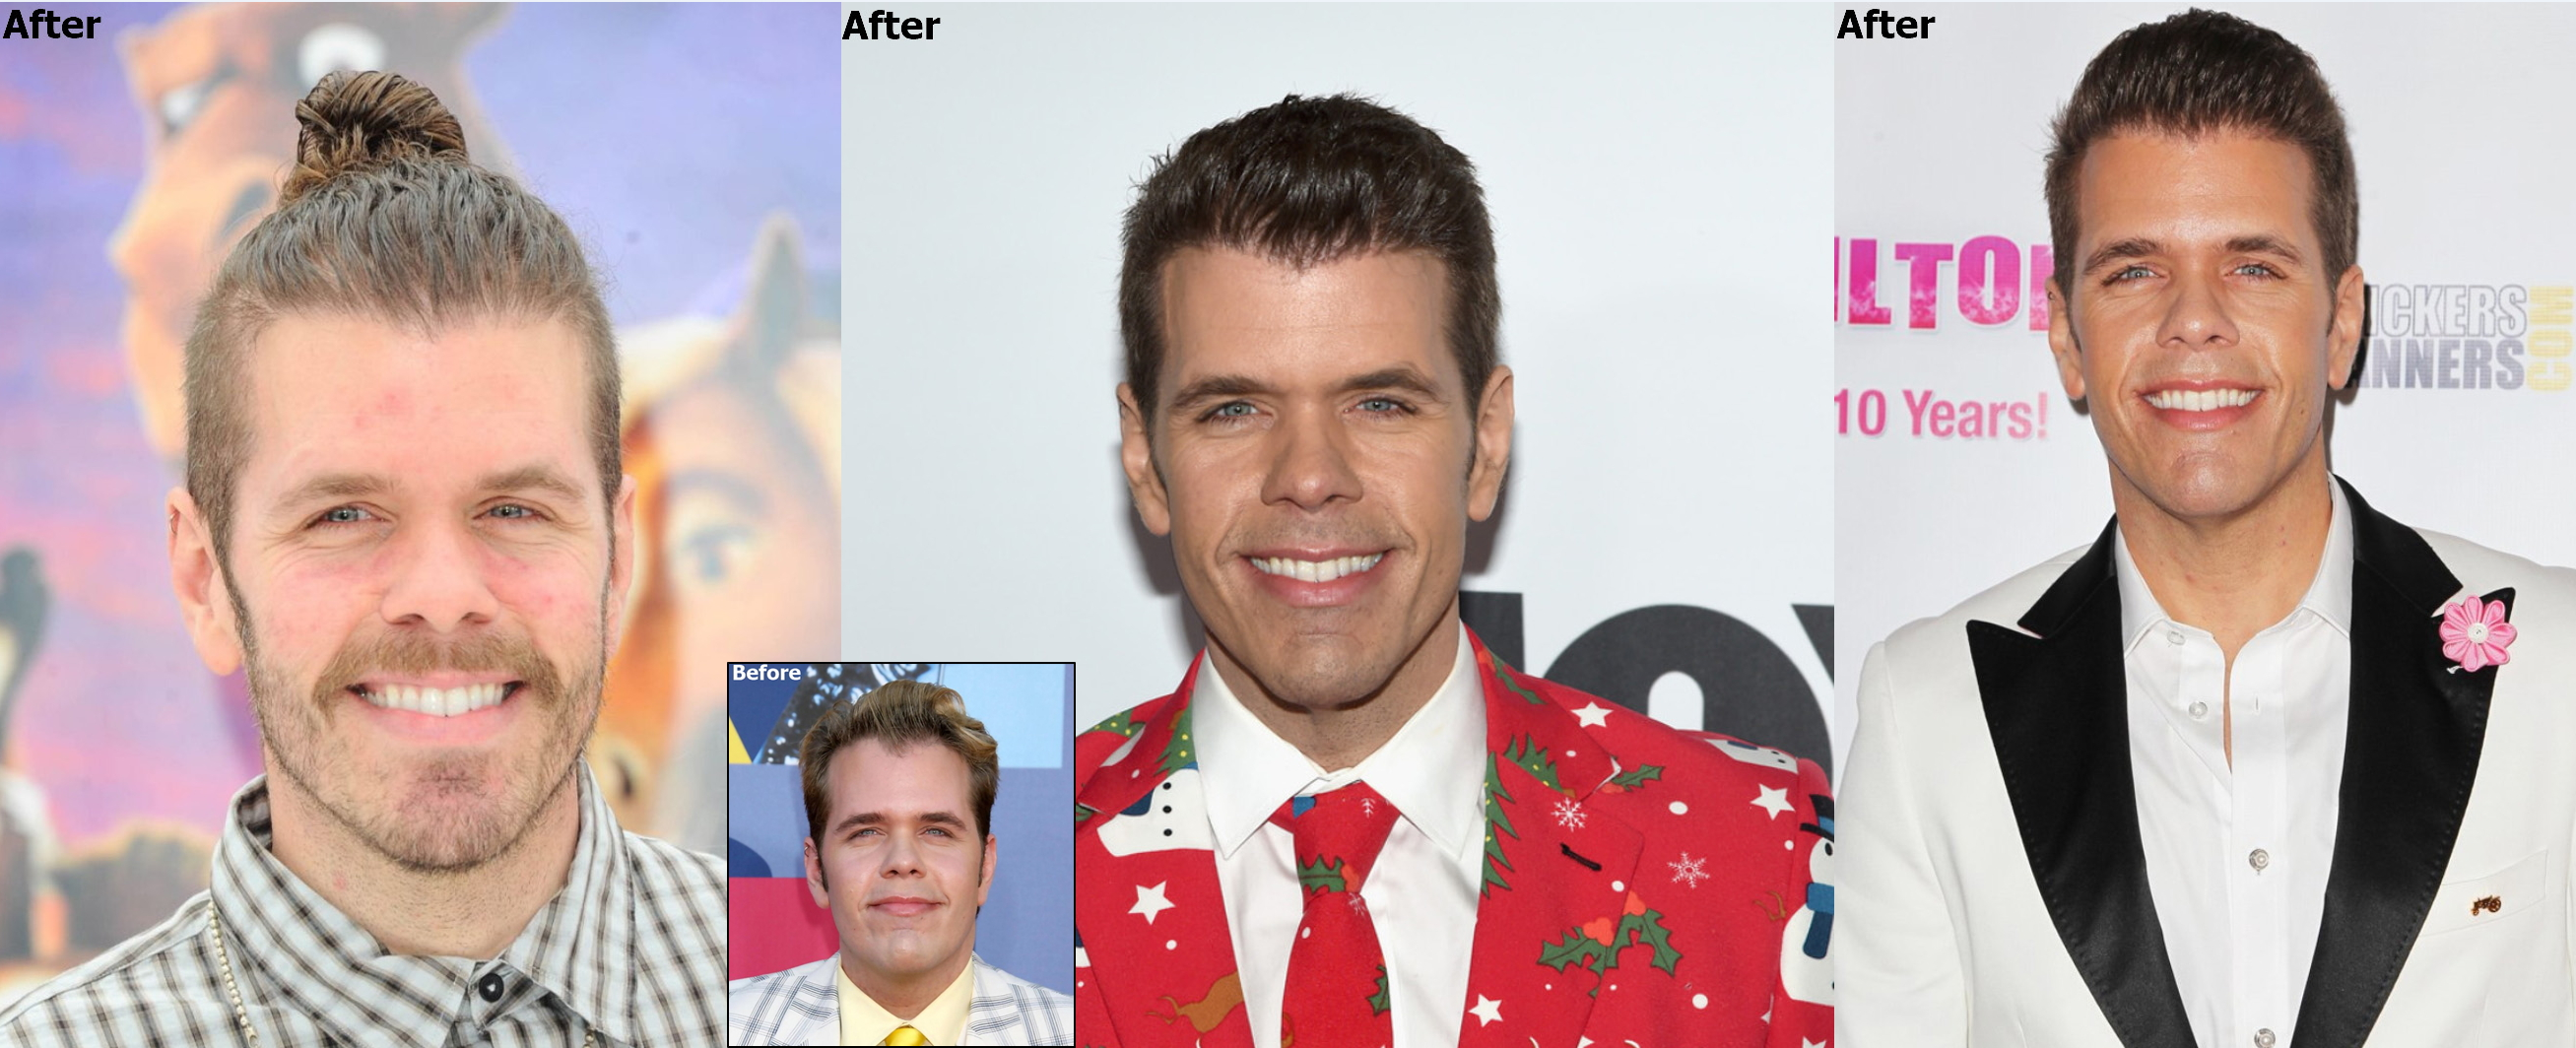 Perez Hilton Has Hair Transplant With Dr Baubac Beauty Wire Magazine